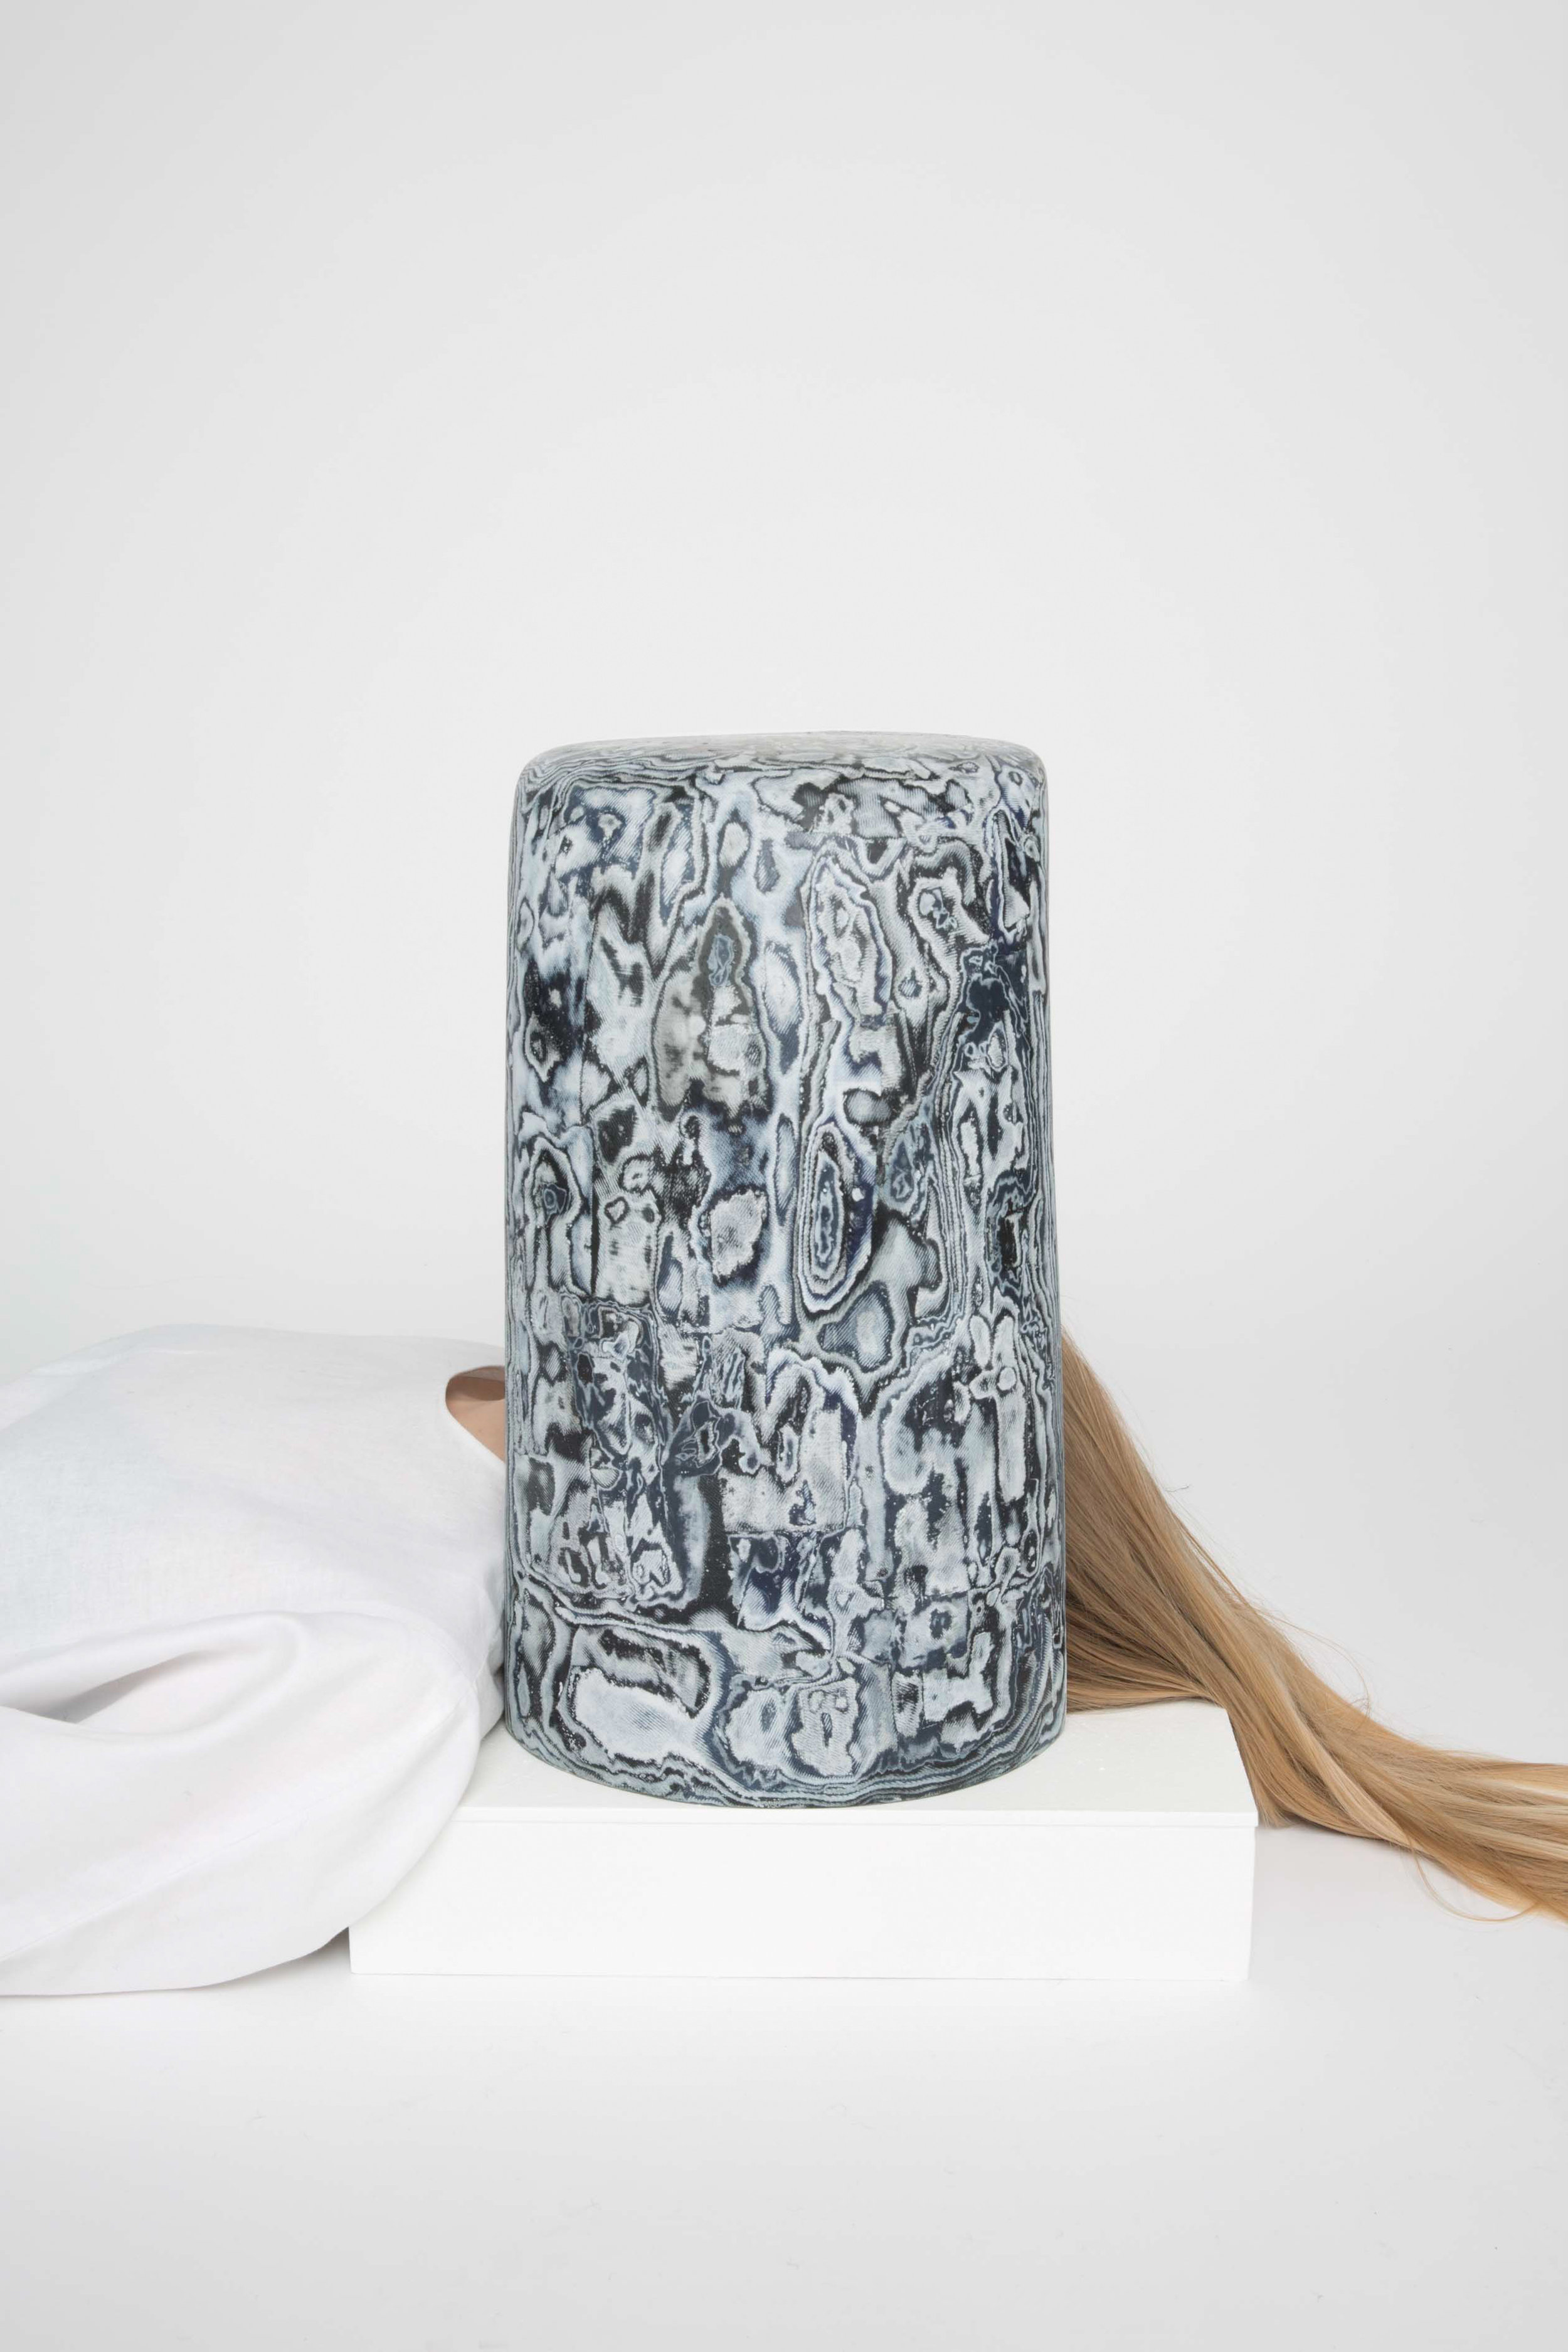 Bahia Stool part of Material Illusions by Sophie Rowley